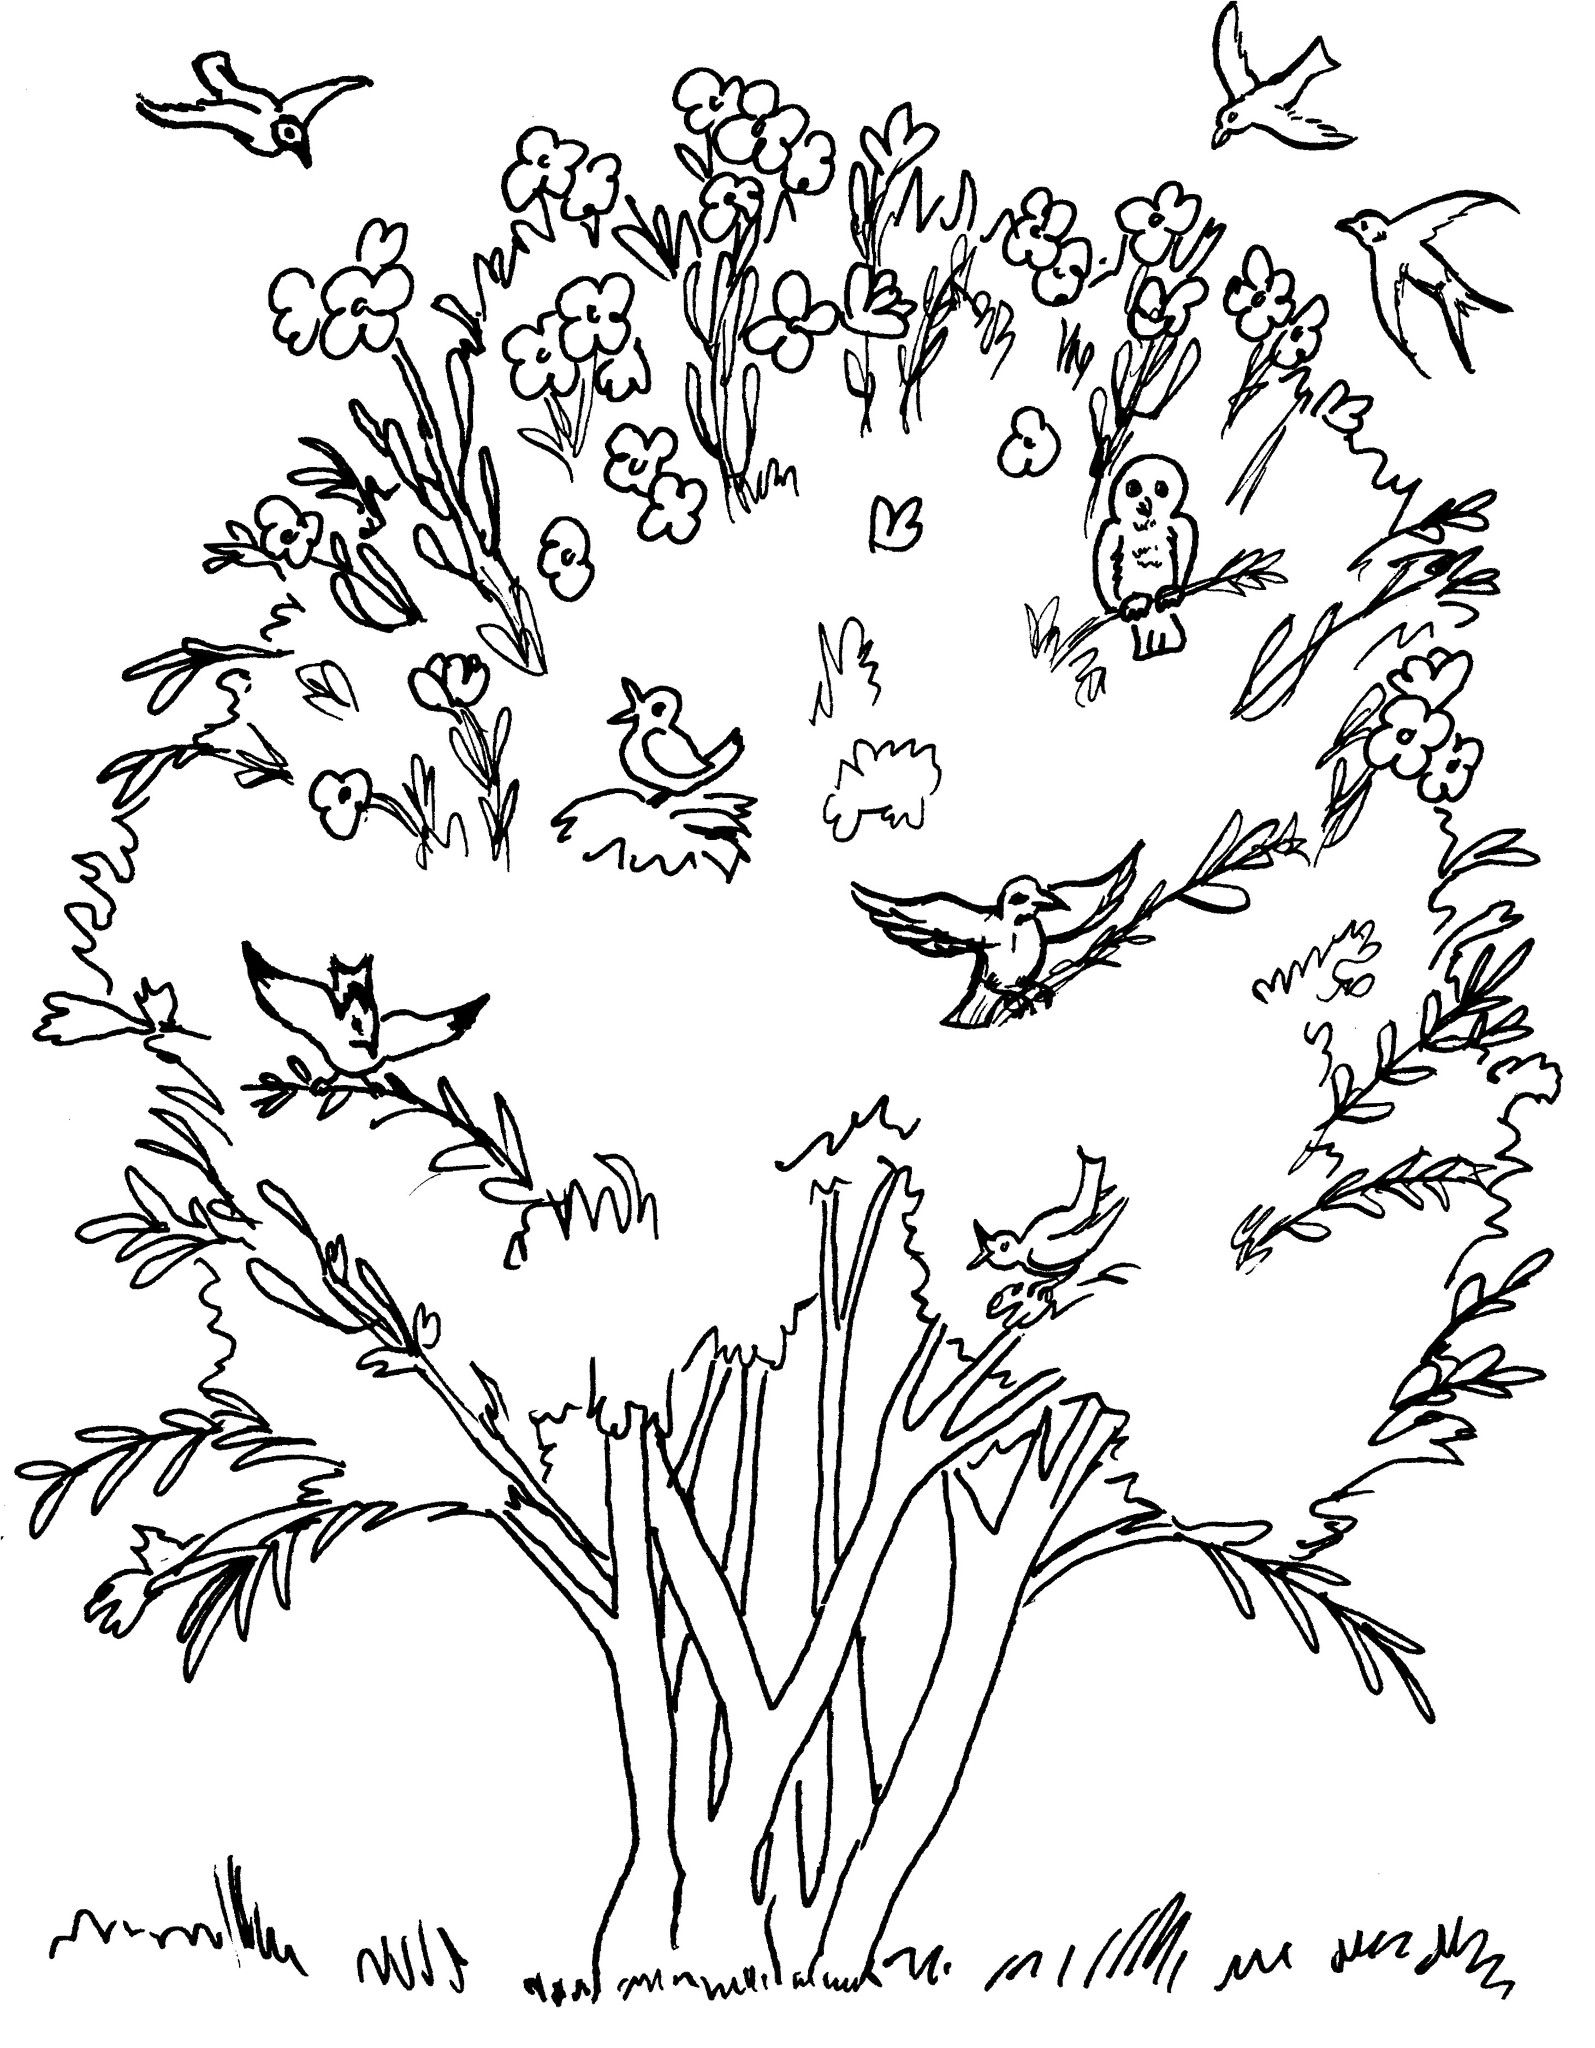 Parable Of The Mustard Seed Coloring Pages Mustard Seed Mustard - Seed-coloring-page